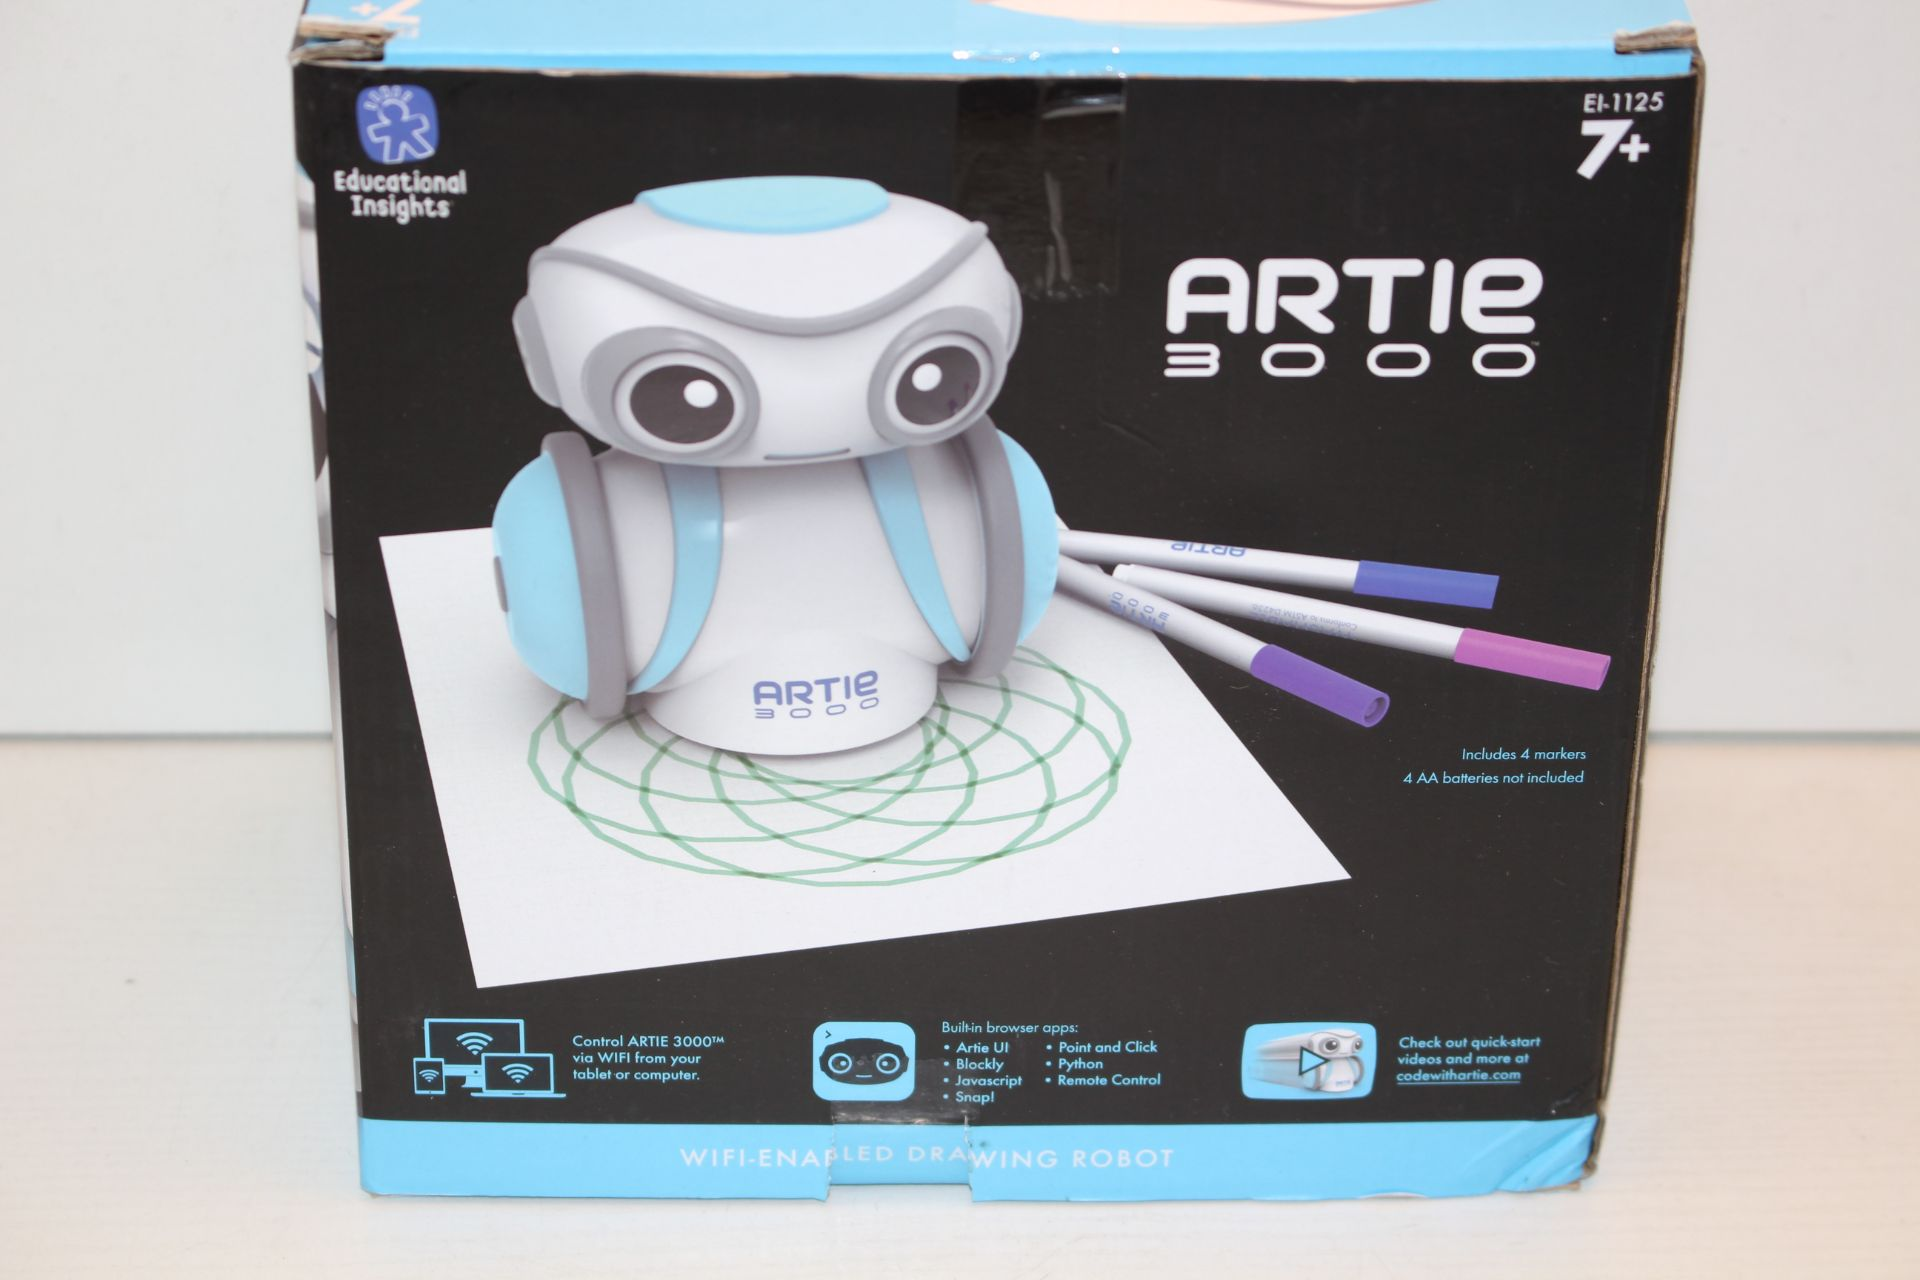 BOXED ARTIE 3000 DRAWING ROBOT RRP £60.00Condition ReportAppraisal Available on Request- All Items